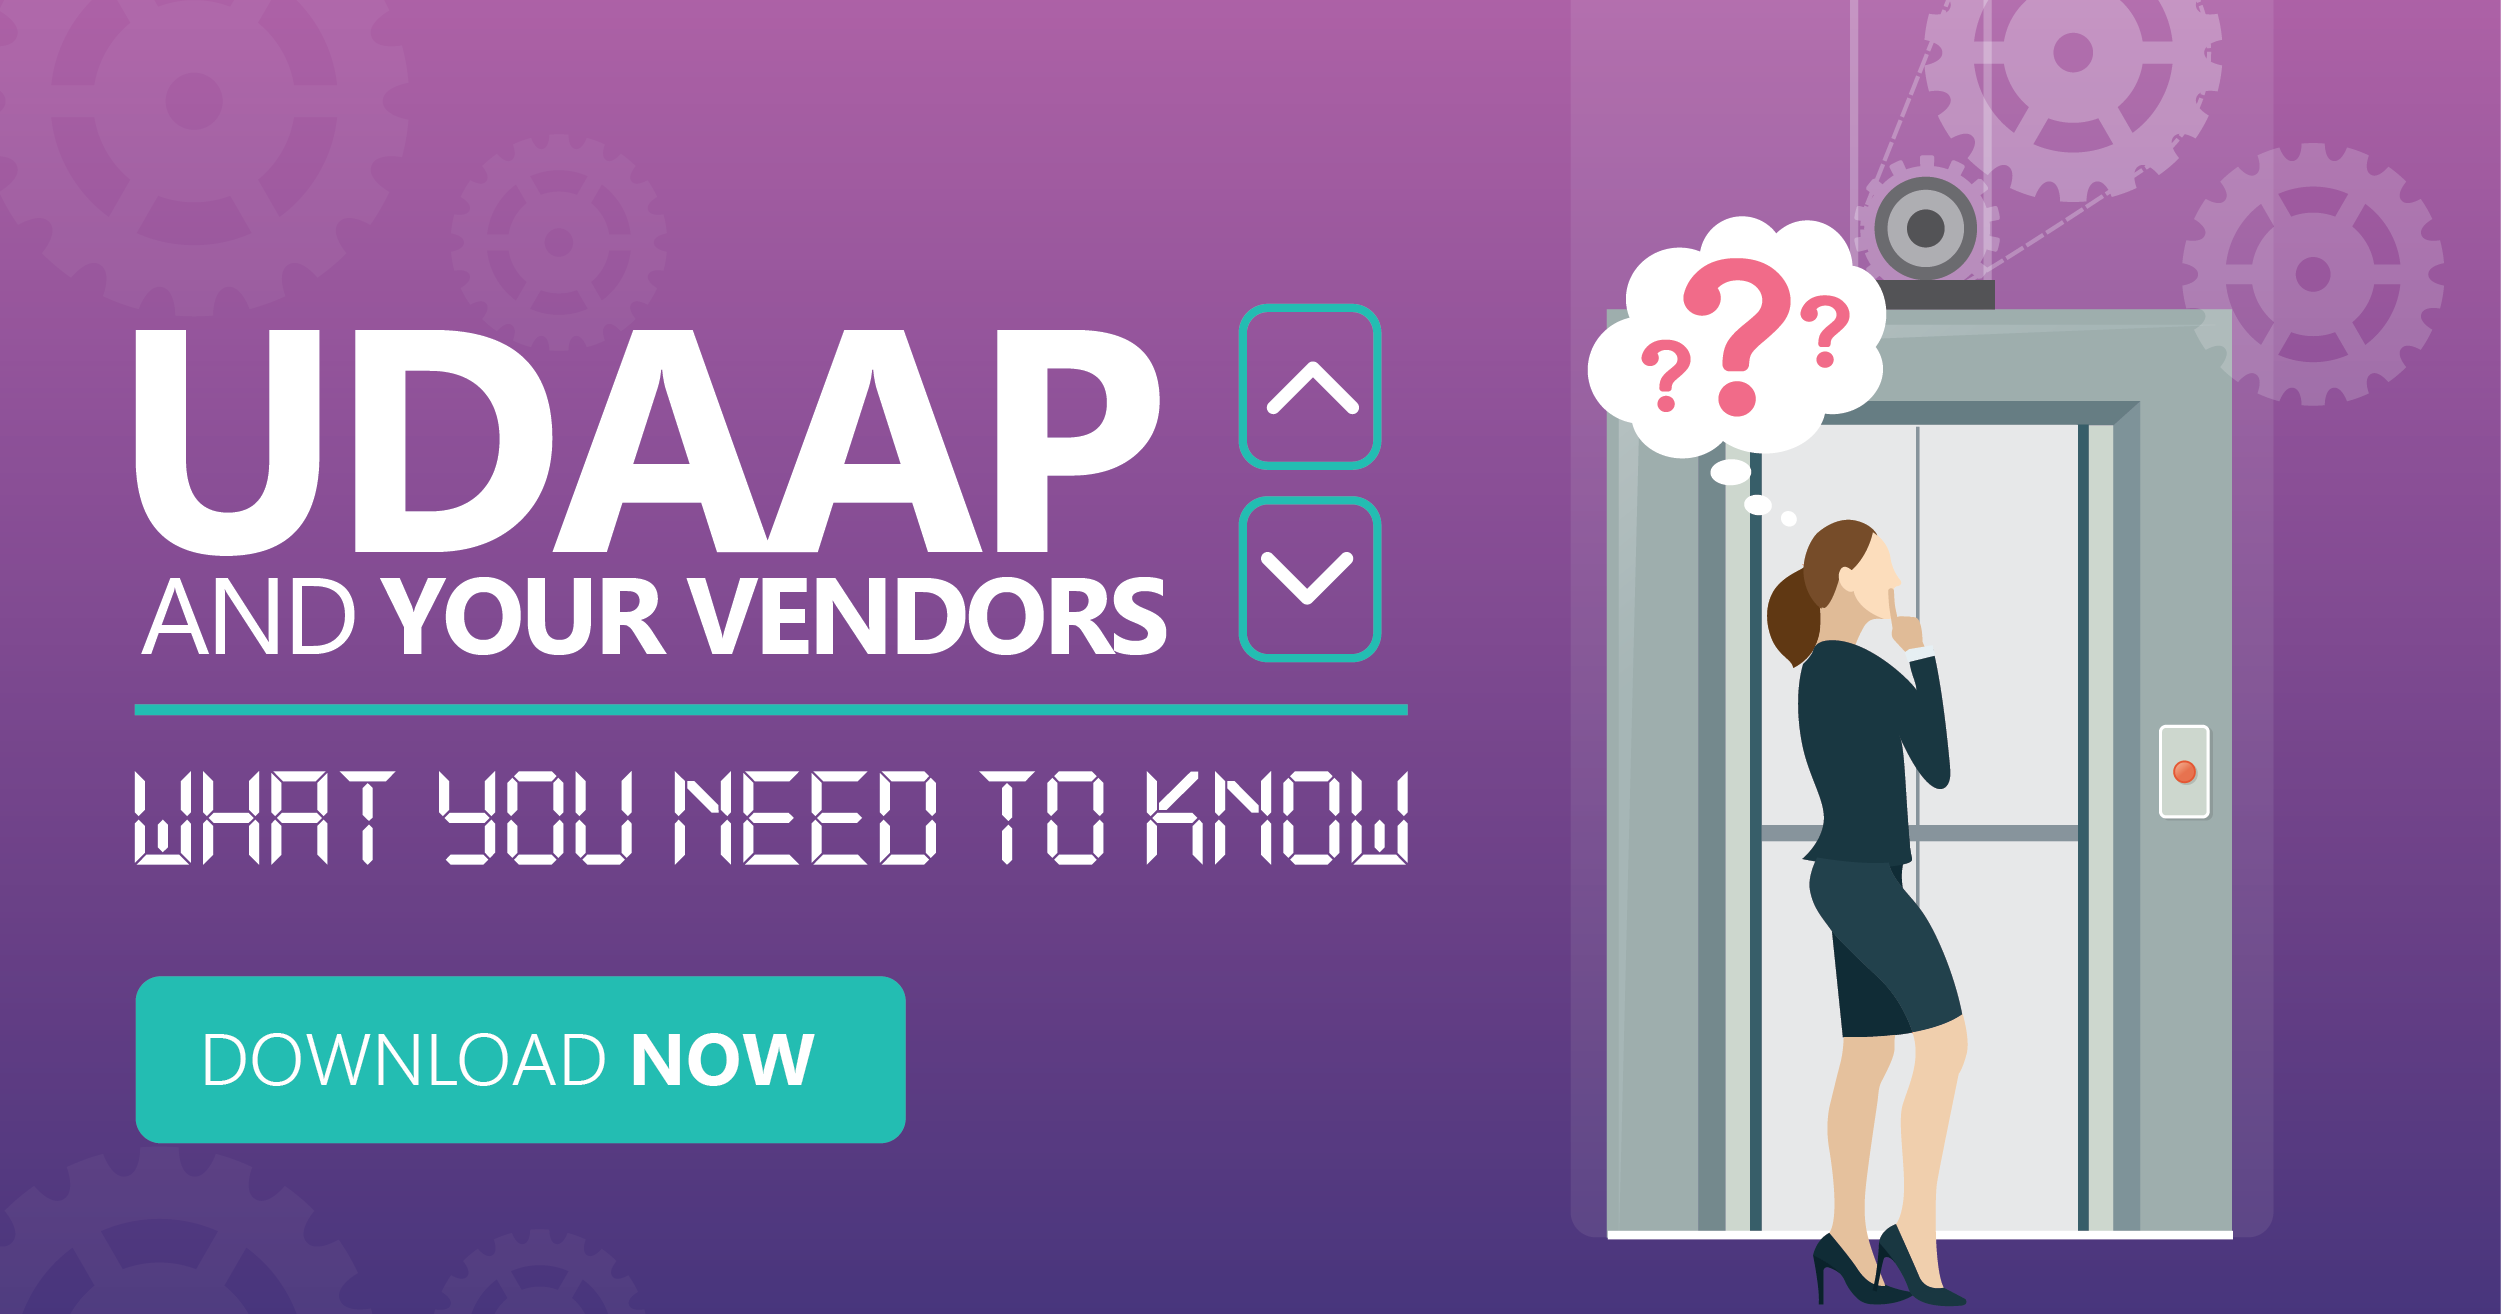 udaap and your vendors